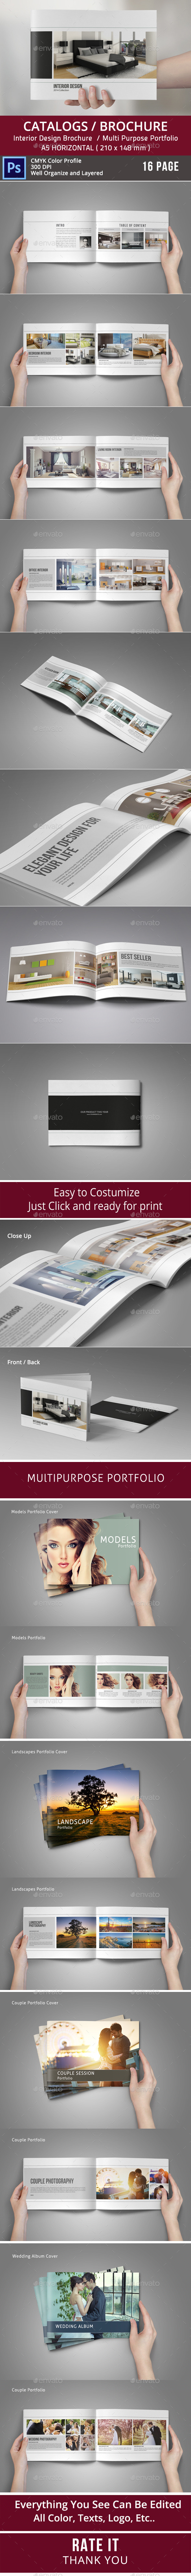 GraphicRiver Multipurpose Brochure or Portfolio Album 8896214